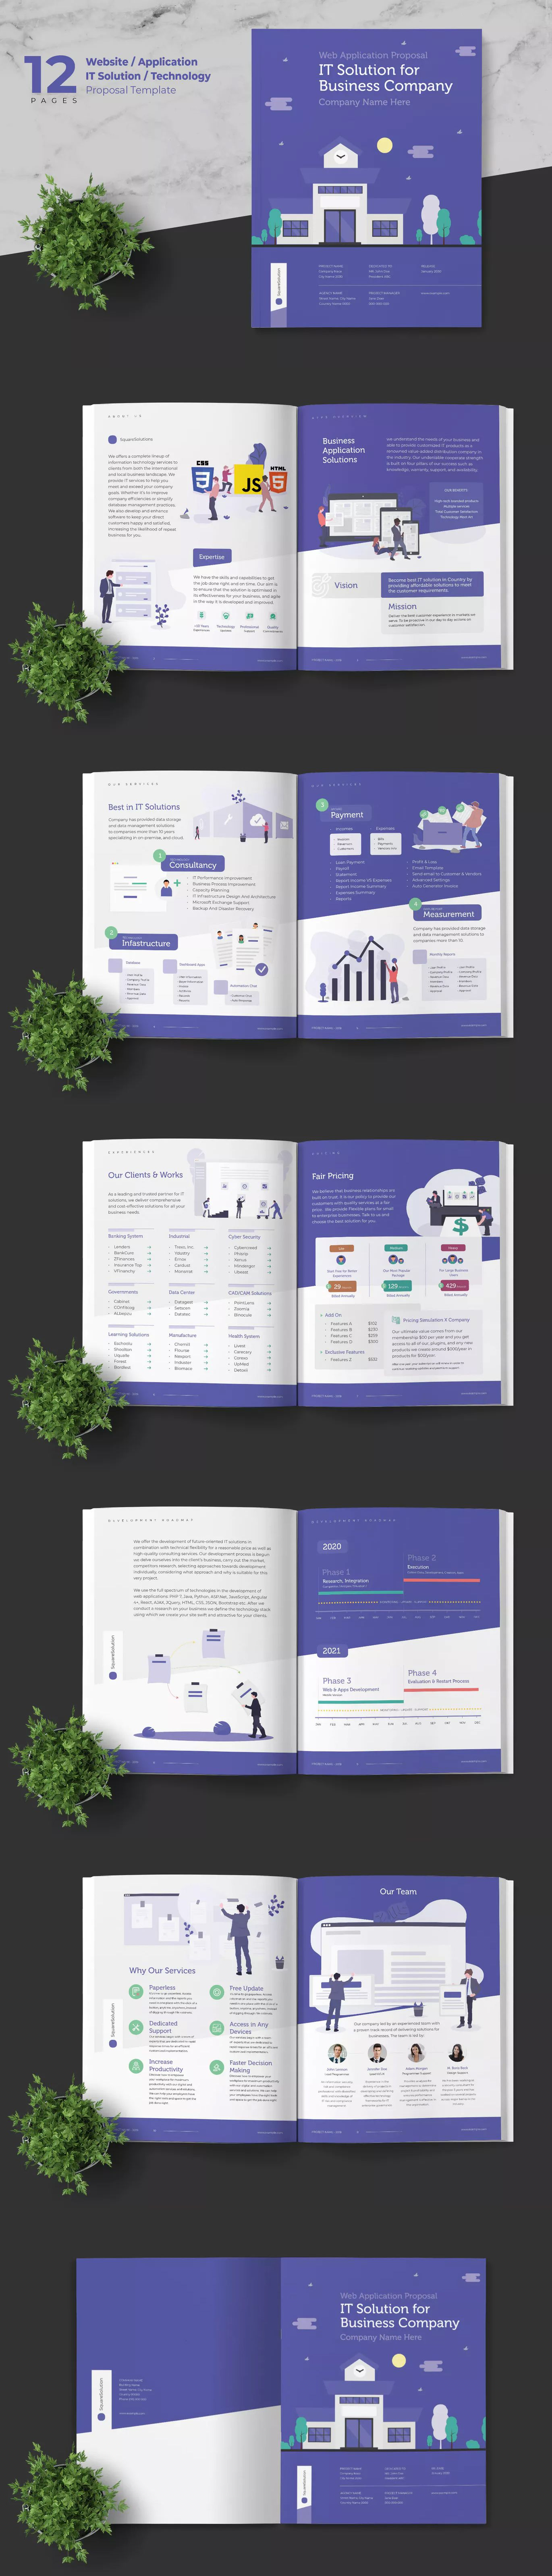 Website Application It Solution Proposal Template Indesign Indd